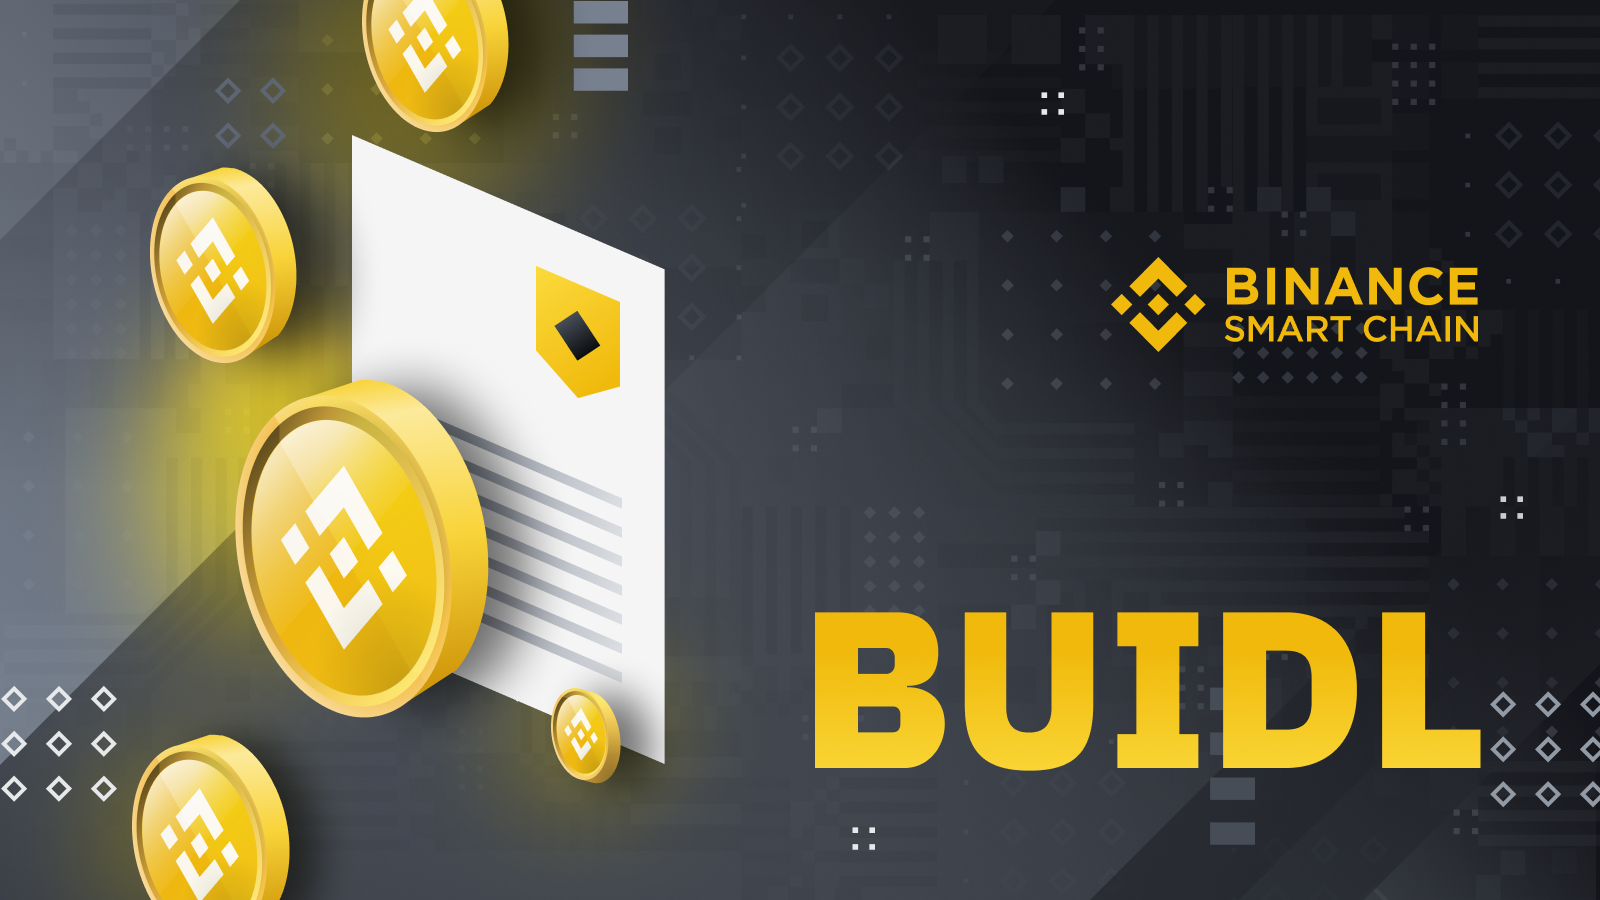 BUIDL Reward Program Updates - November